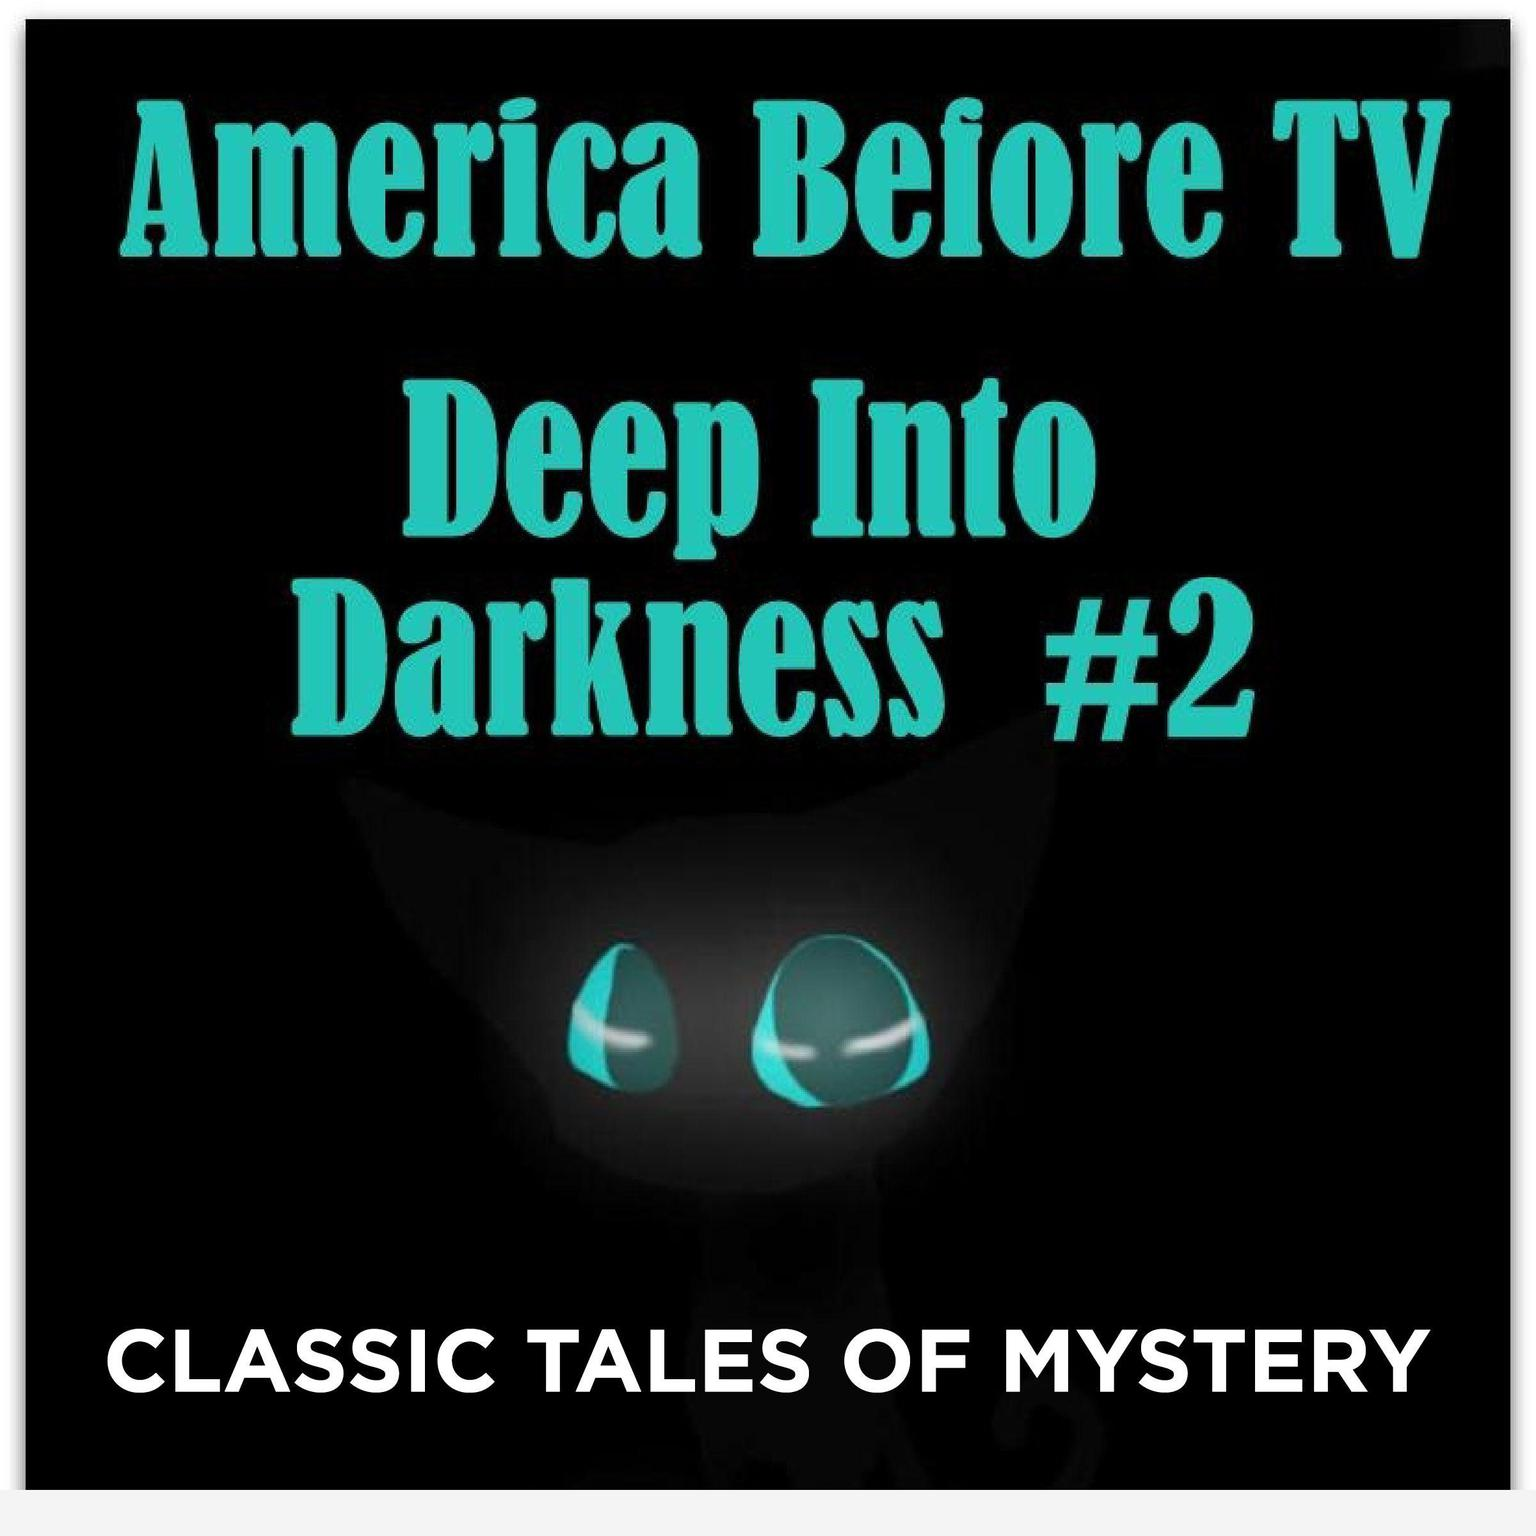 Printable America Before TV - Deep Into Darkness  #2 Audiobook Cover Art